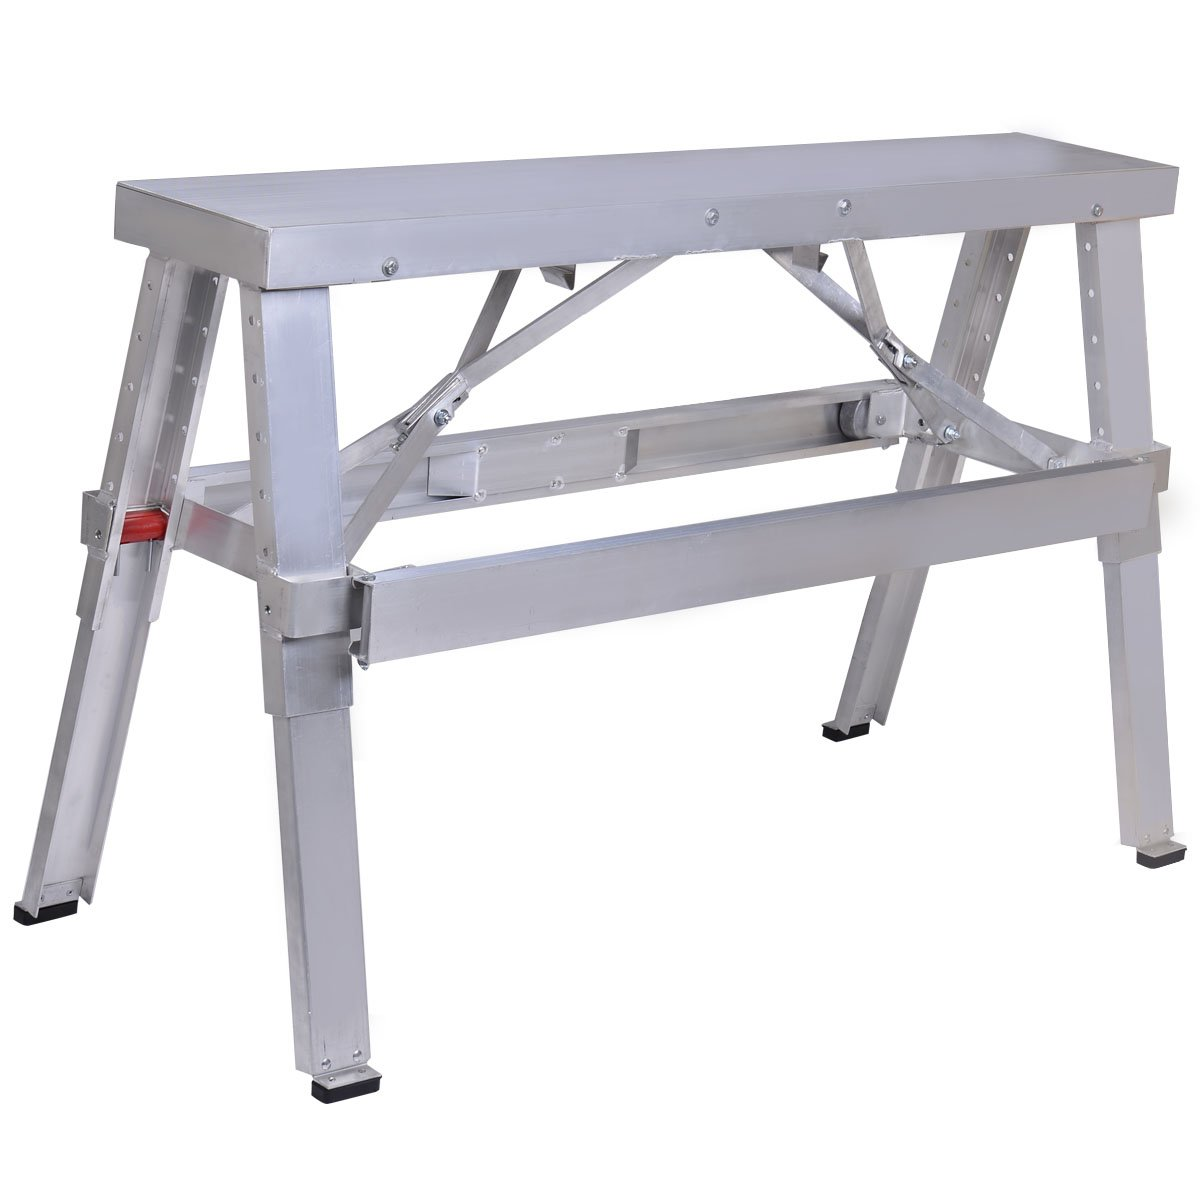 Toolsempire Aluminum Drywall Walk-Up Folding Bench Heavy Duty Workbench Adjustable 18''-30'' by Toolsempire